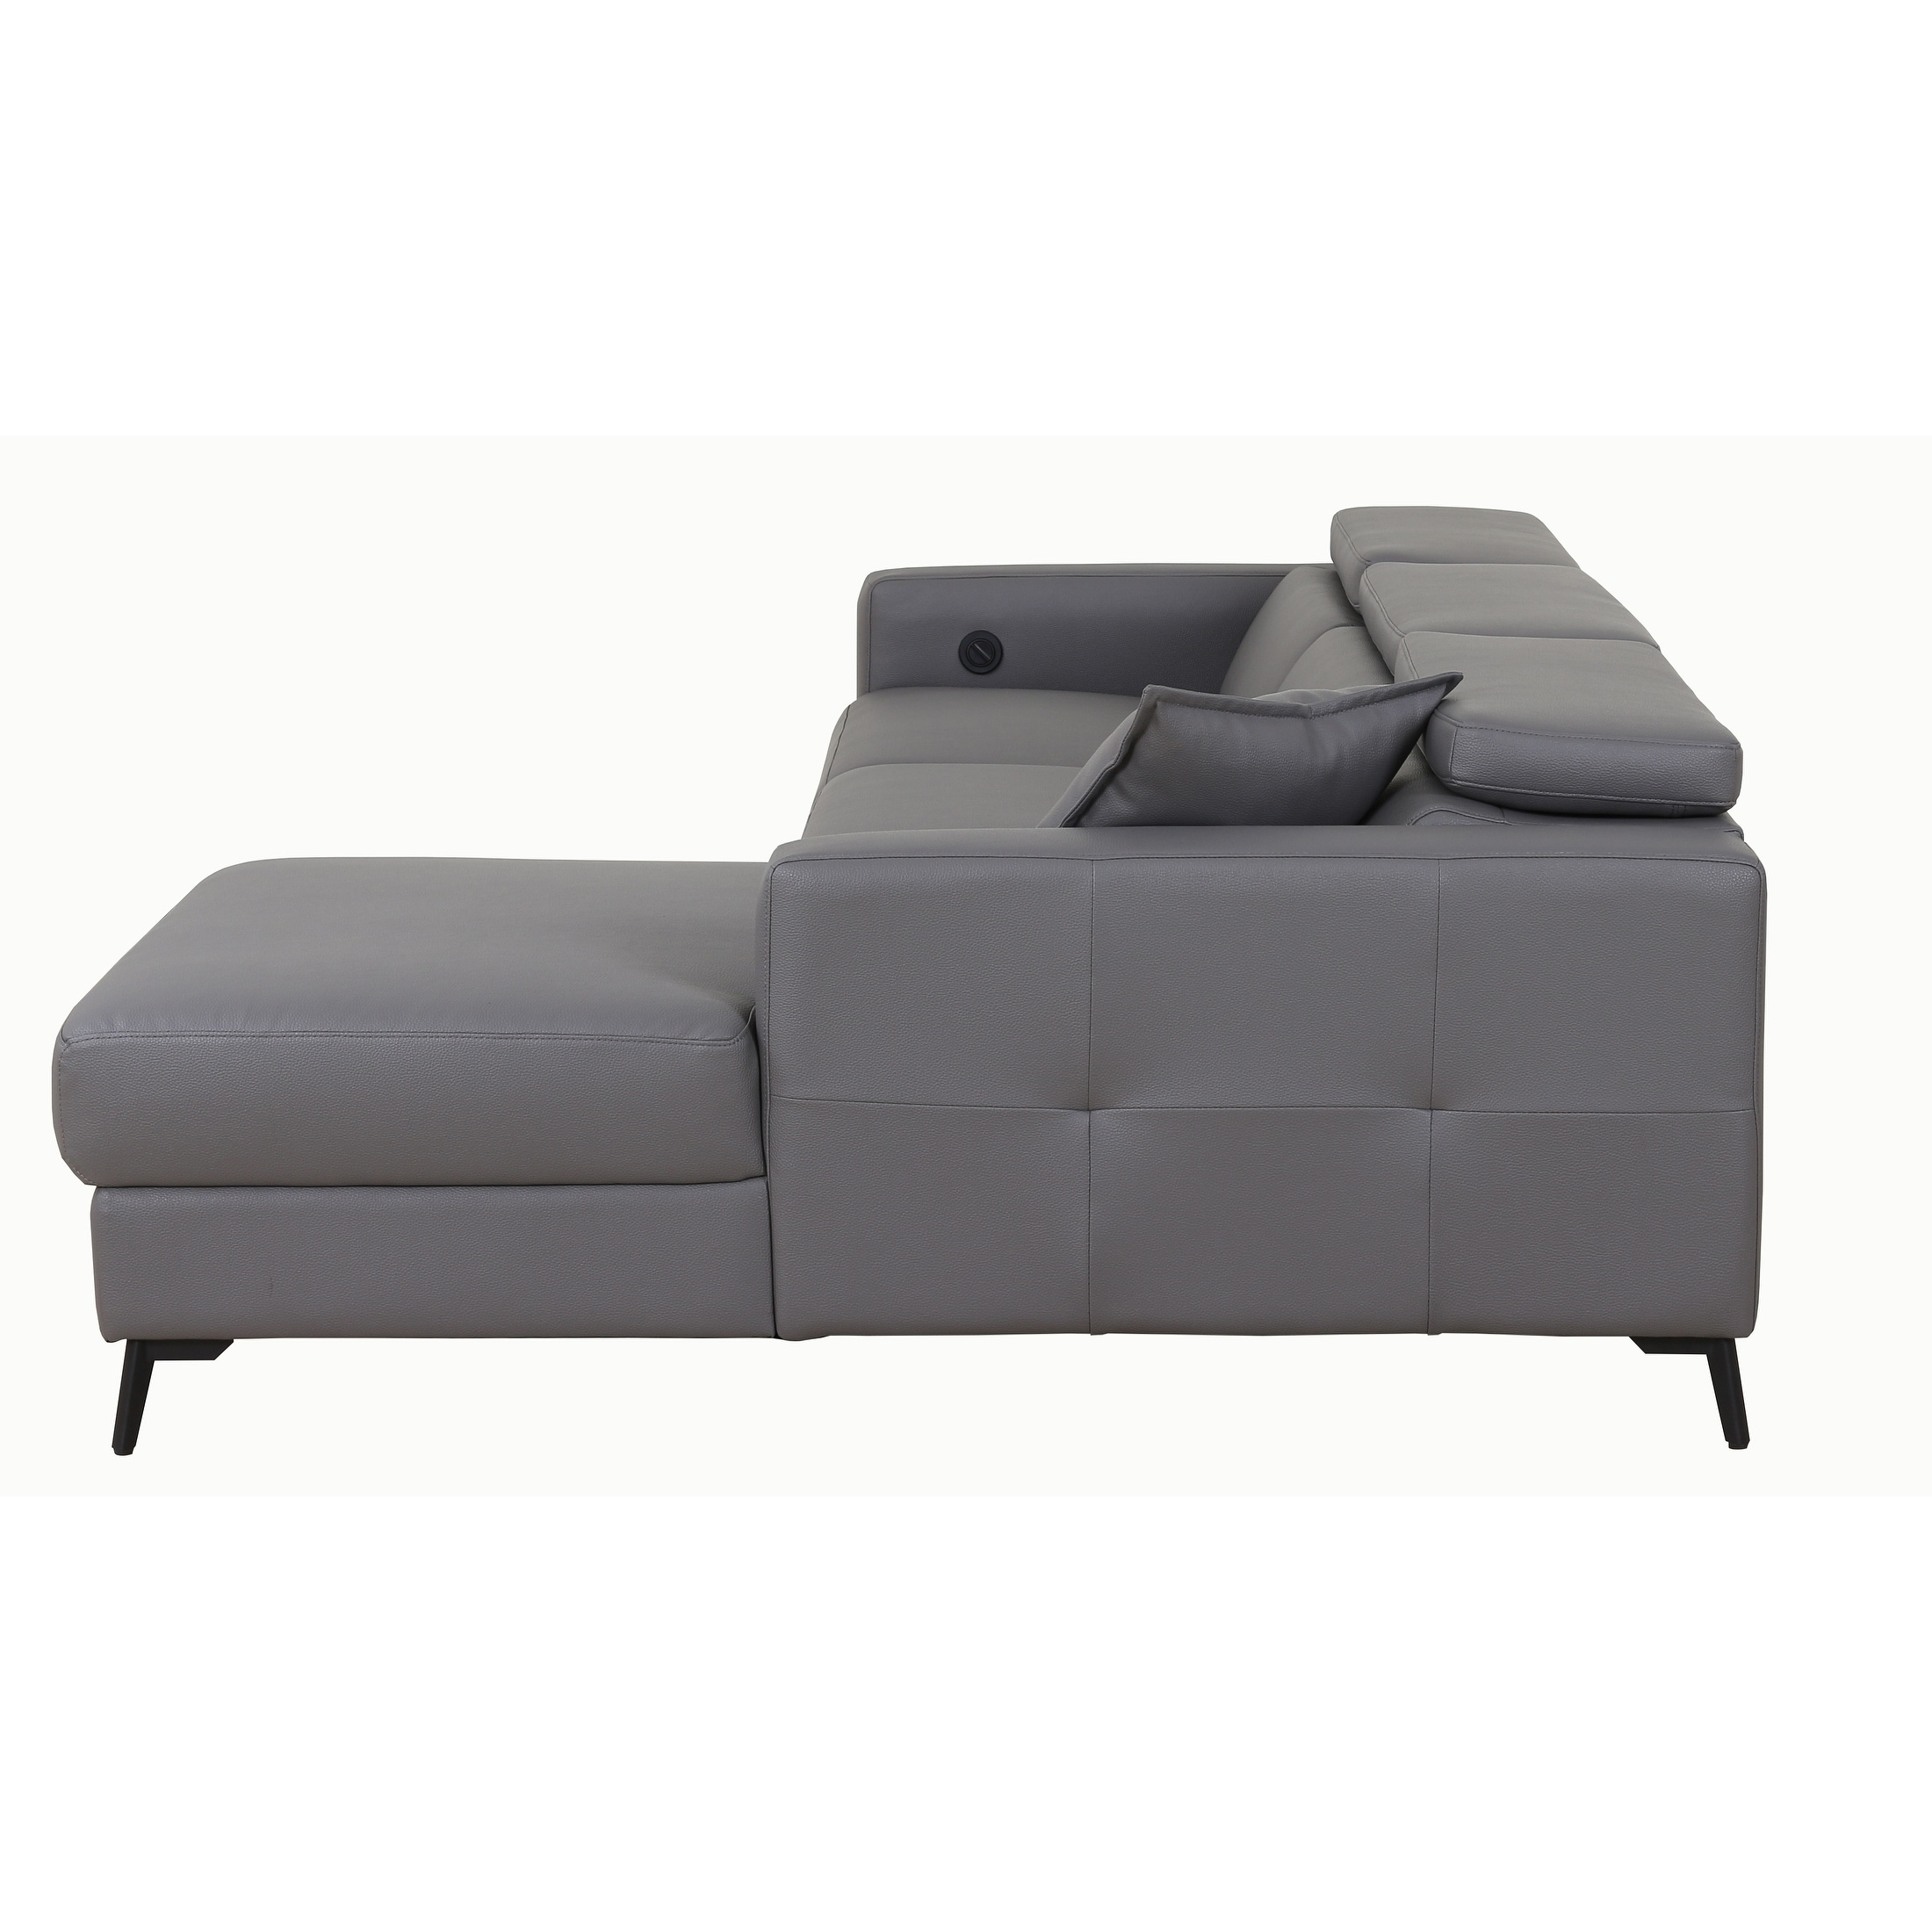 Sectional Sofas With Electric Recliners Regarding Newest Ladeso Modern Sectional Sofa With Electrical Recliner Dark Grey (View 14 of 20)